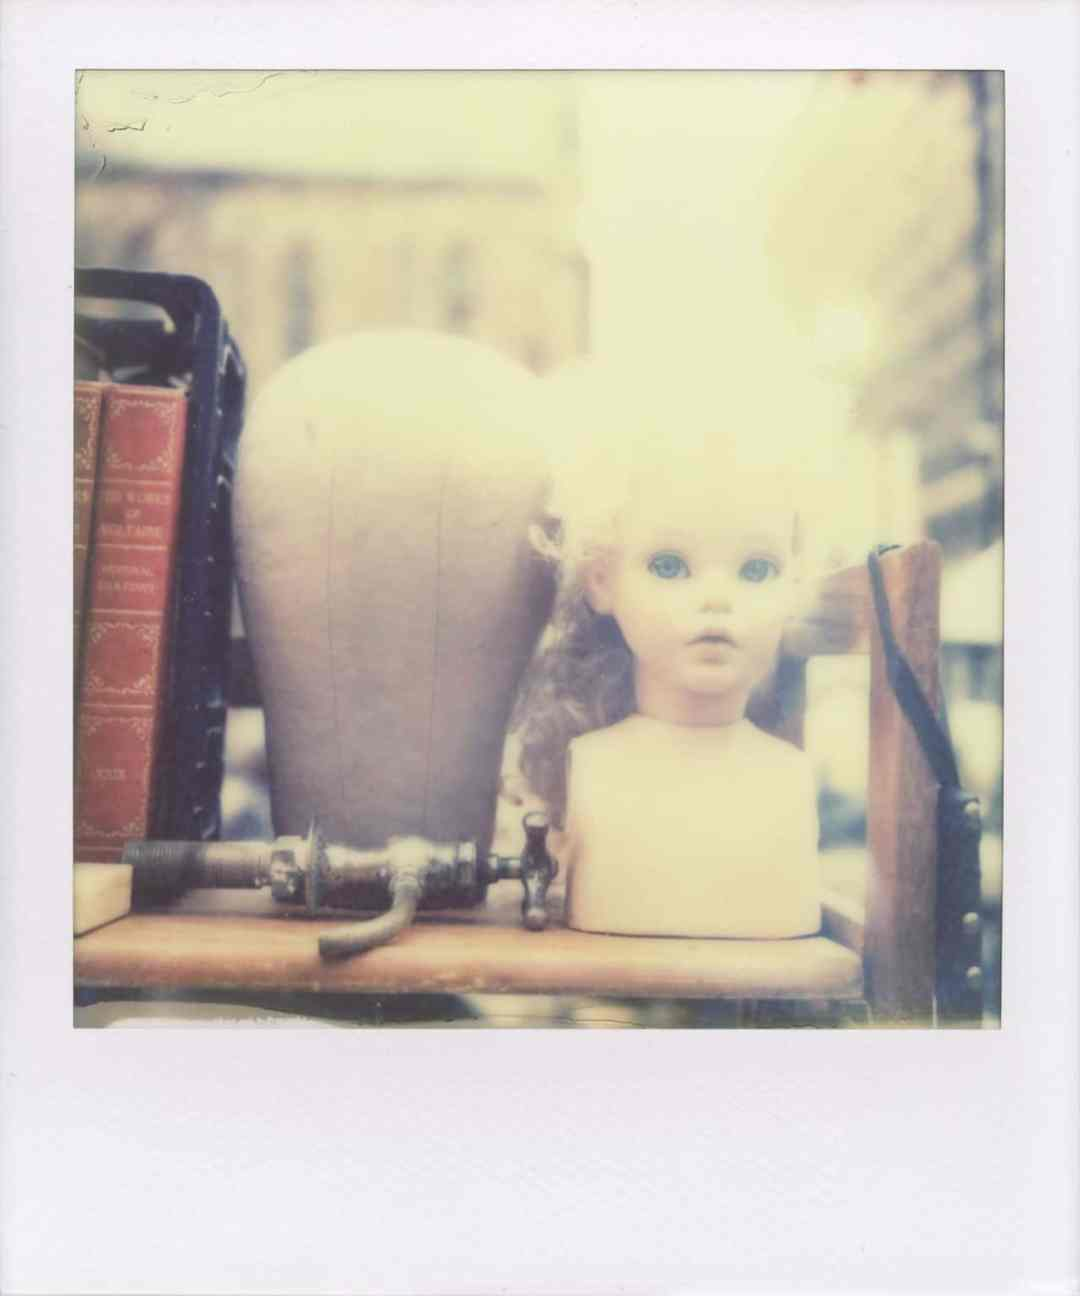 """Esther"" (NYC 2013) - Polaroid SX-70 Alpha 1 Land Camera and Impossible PX 70 Cool film"